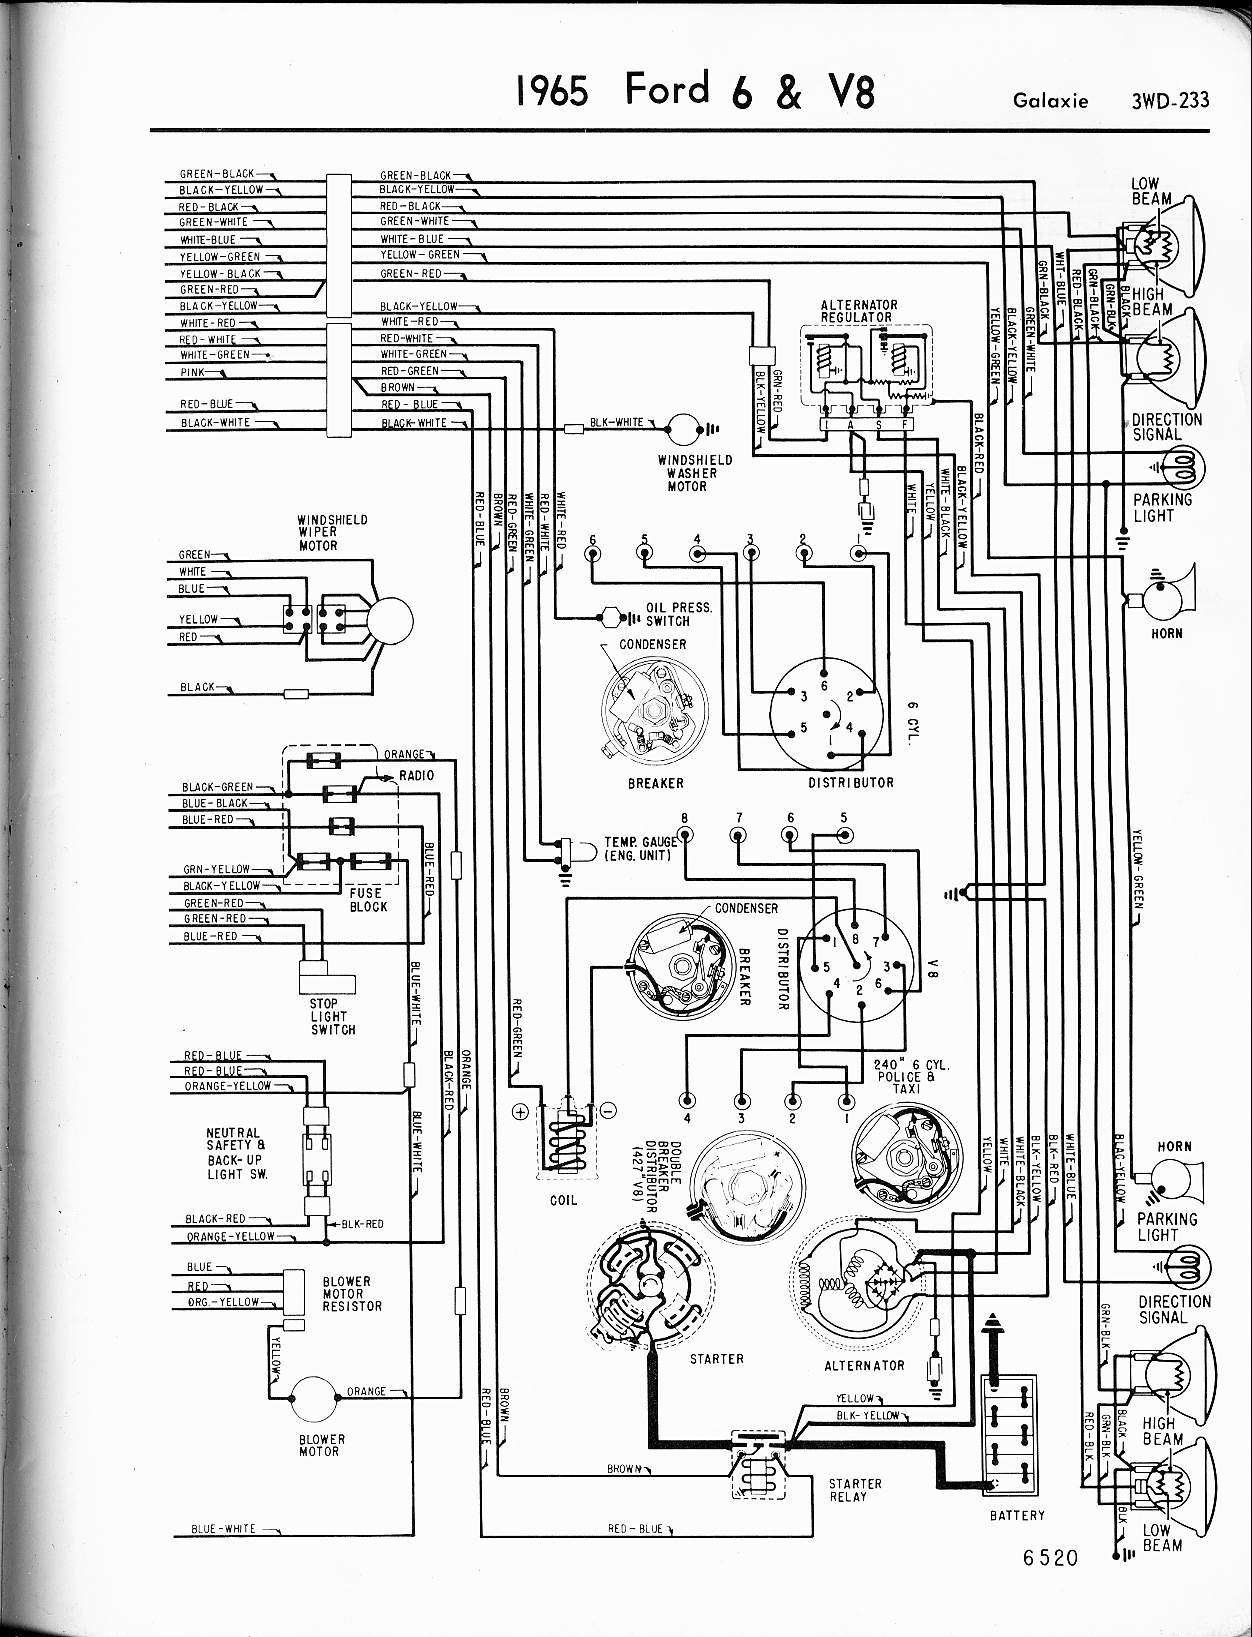 ford factory wiring diagrams 57 65 ford wiring diagrams 1965 6 v8 galaxie right